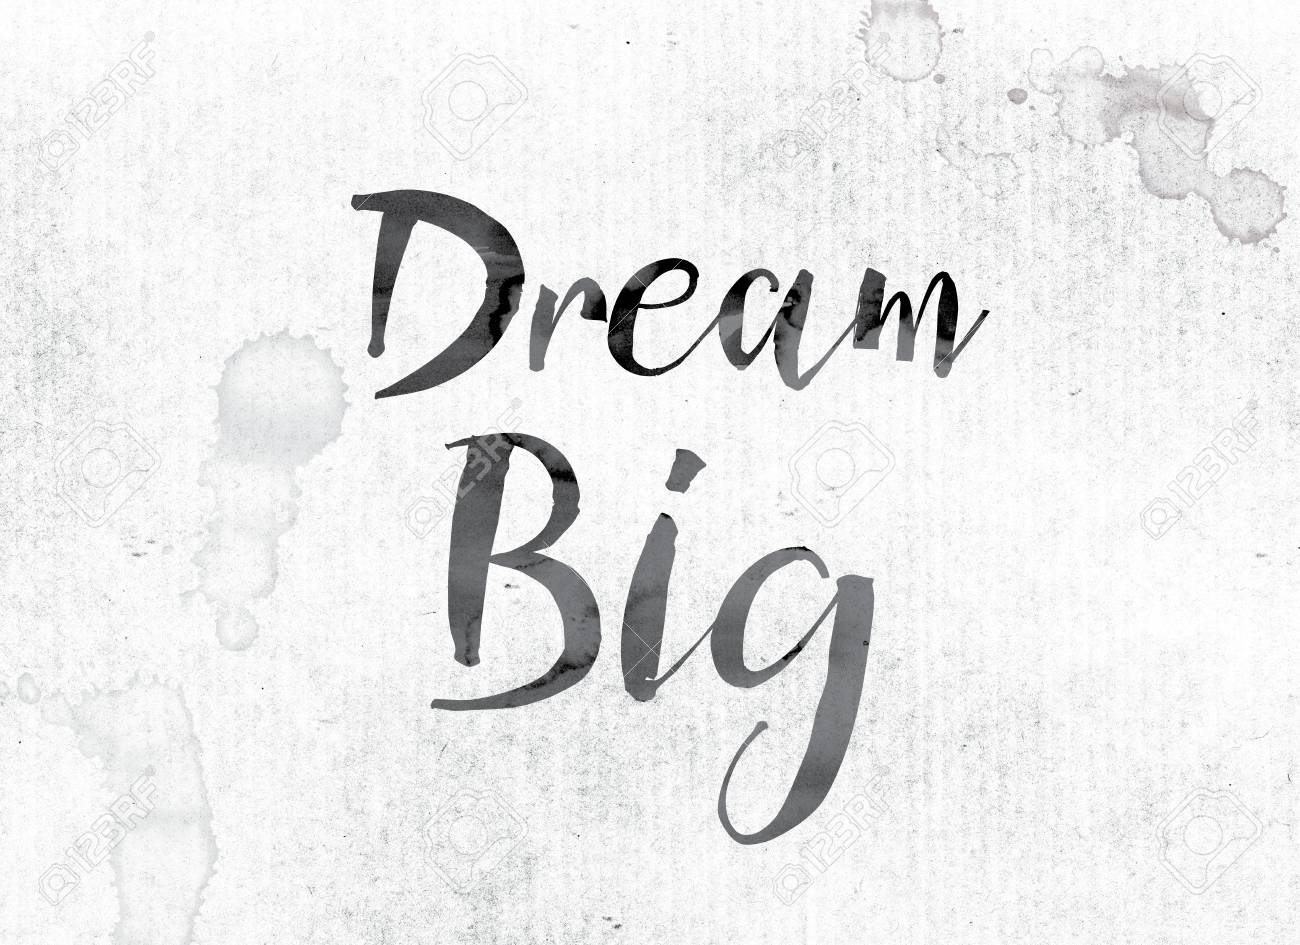 The Word Dream Big Concept And Theme Painted In Watercolor Stock